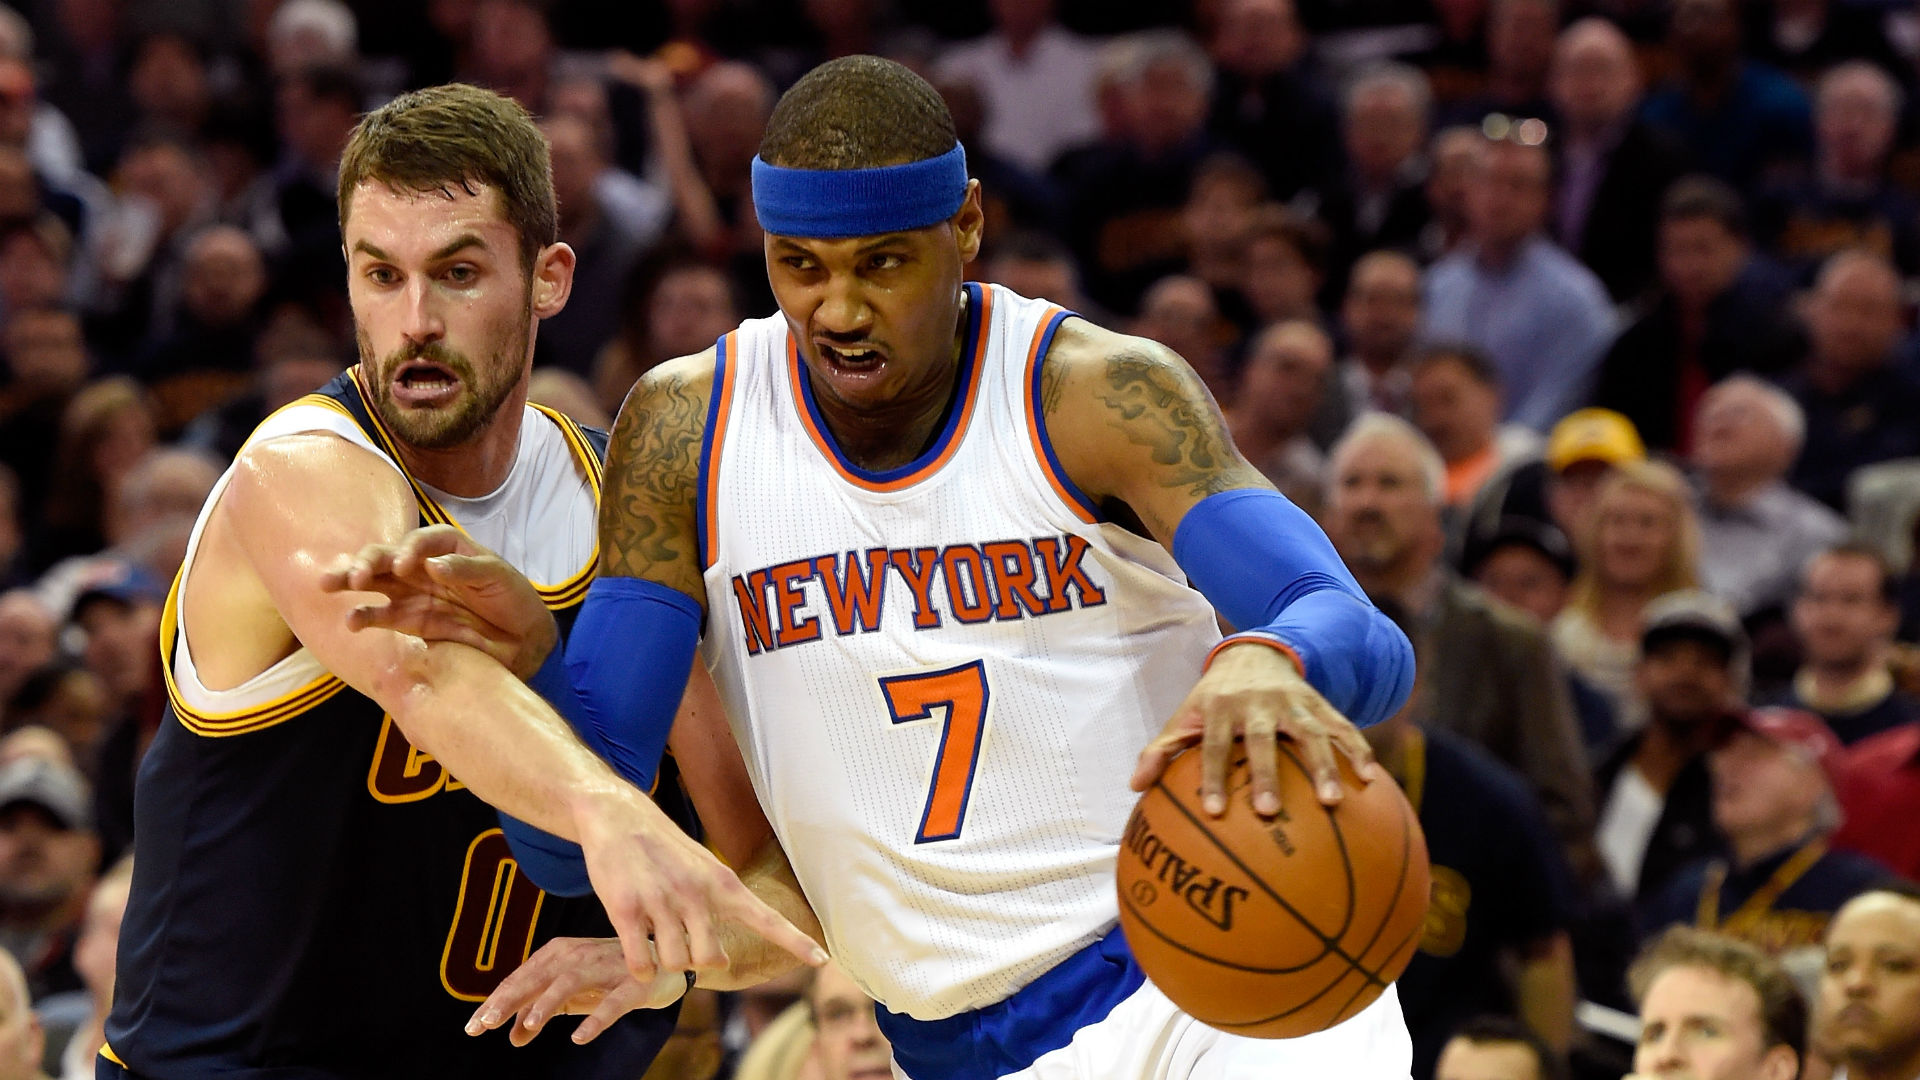 LeBron James and Carmelo Anthony square off